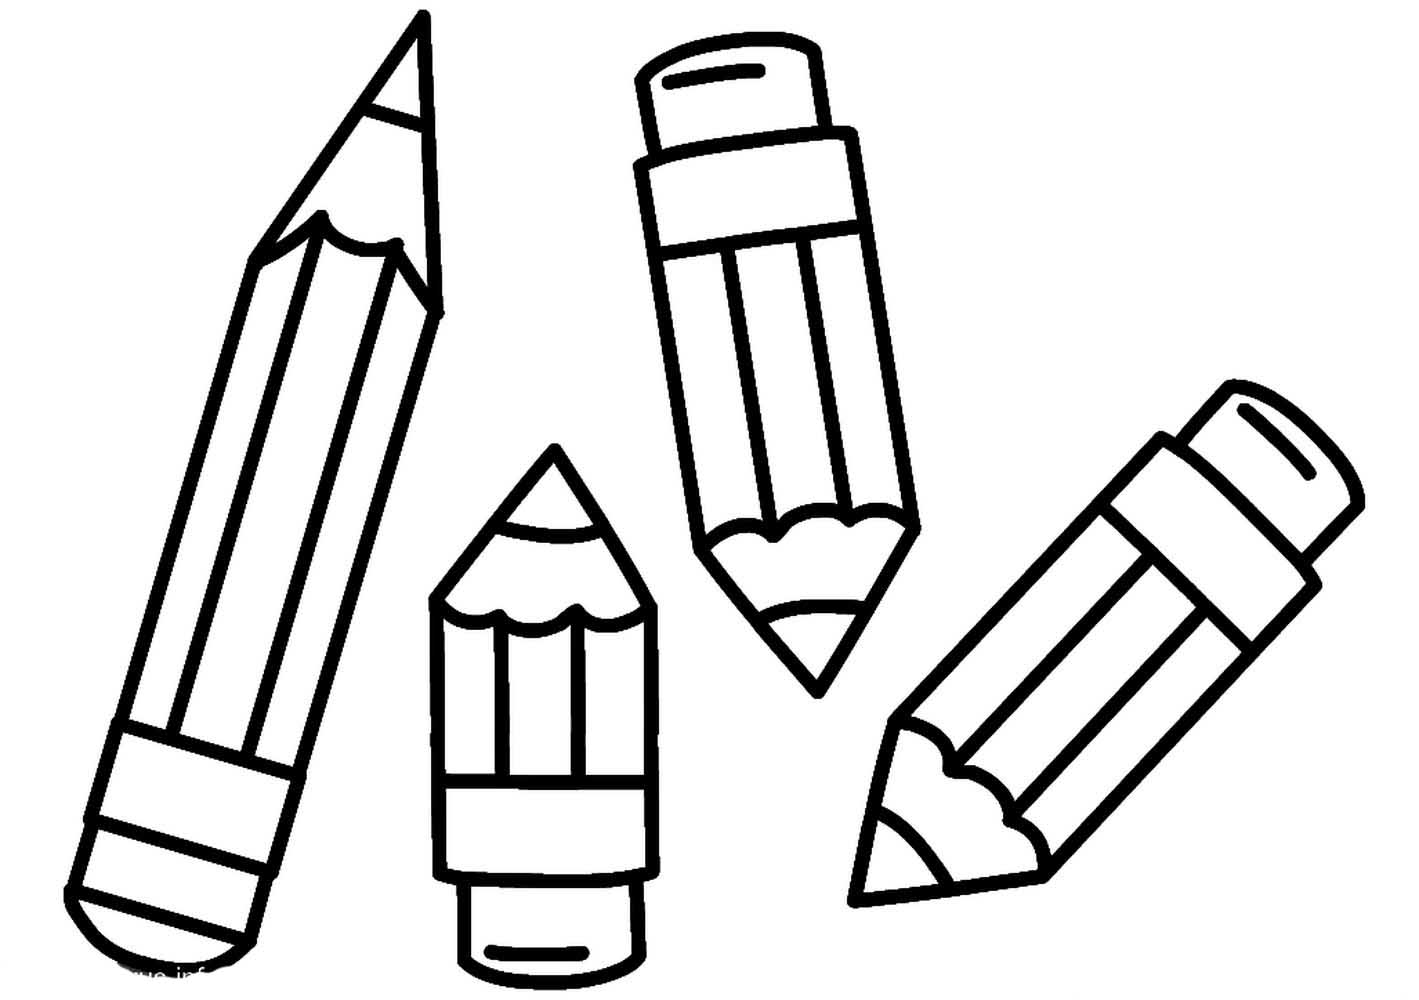 pencil coloring page pencil coloring pages to download and print for free coloring page pencil 1 1